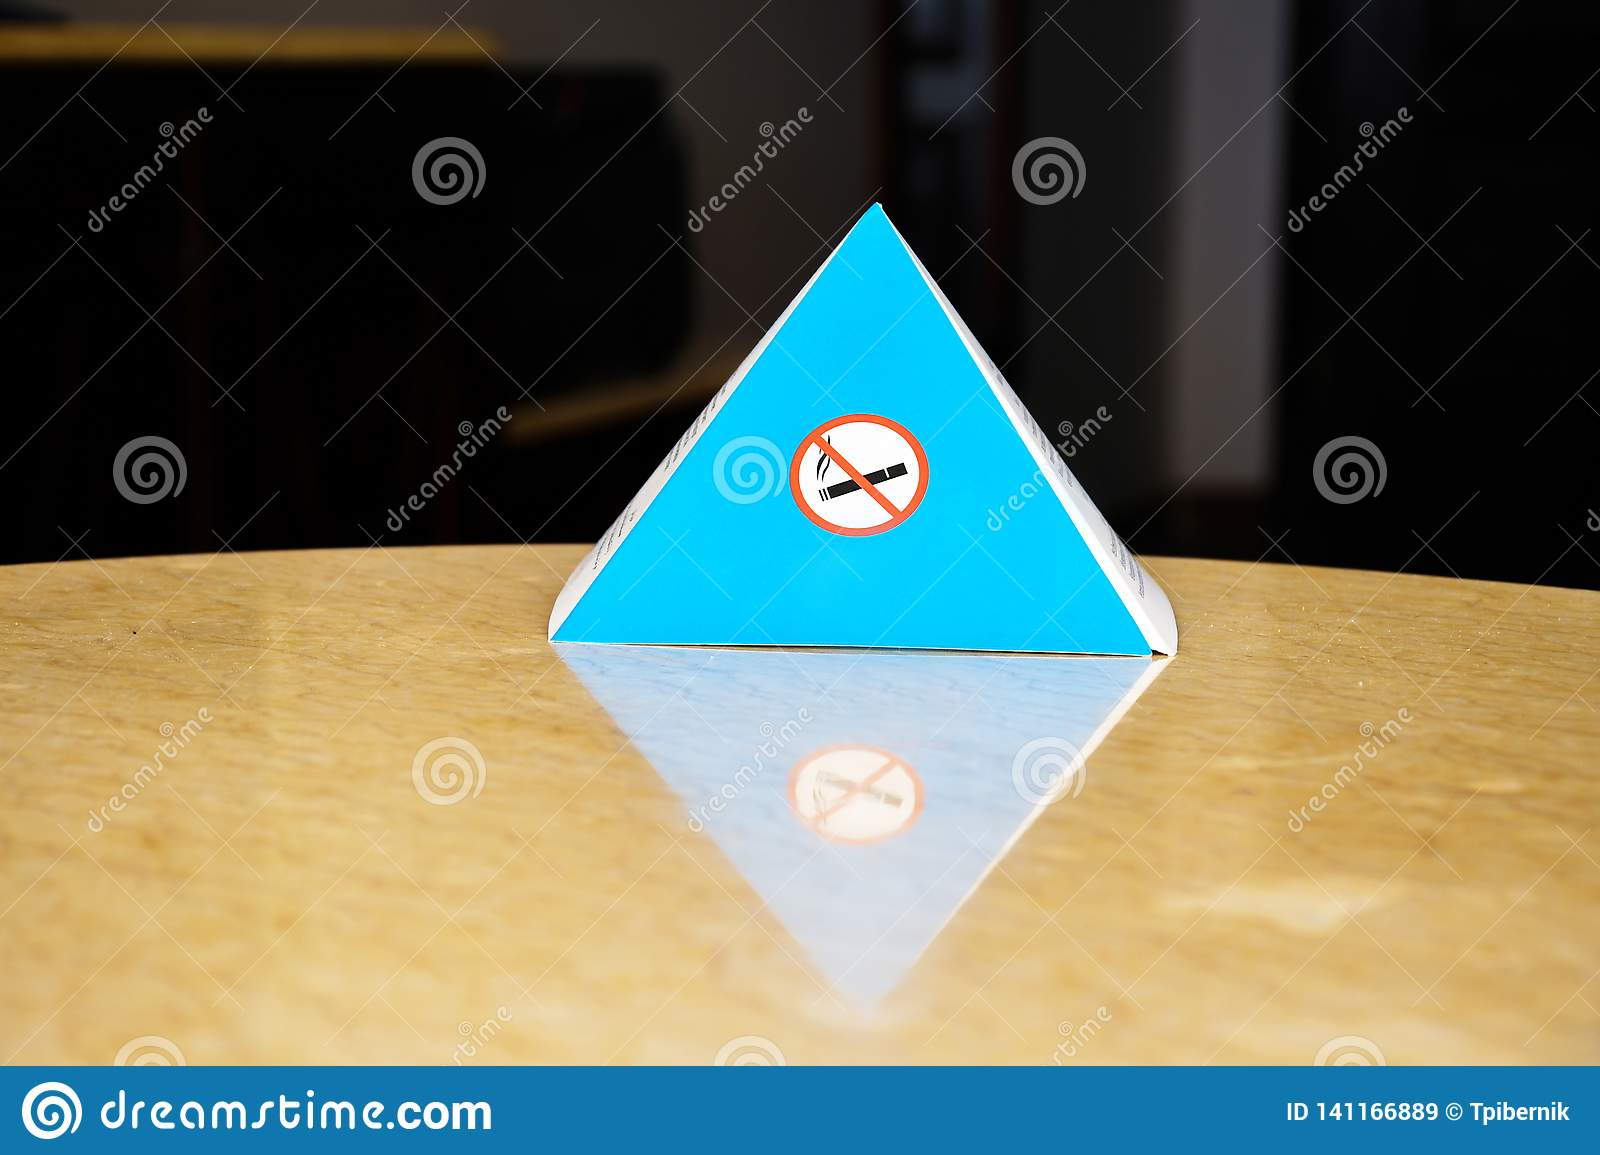 Blue paper sign for smoking prohibition in indoor places